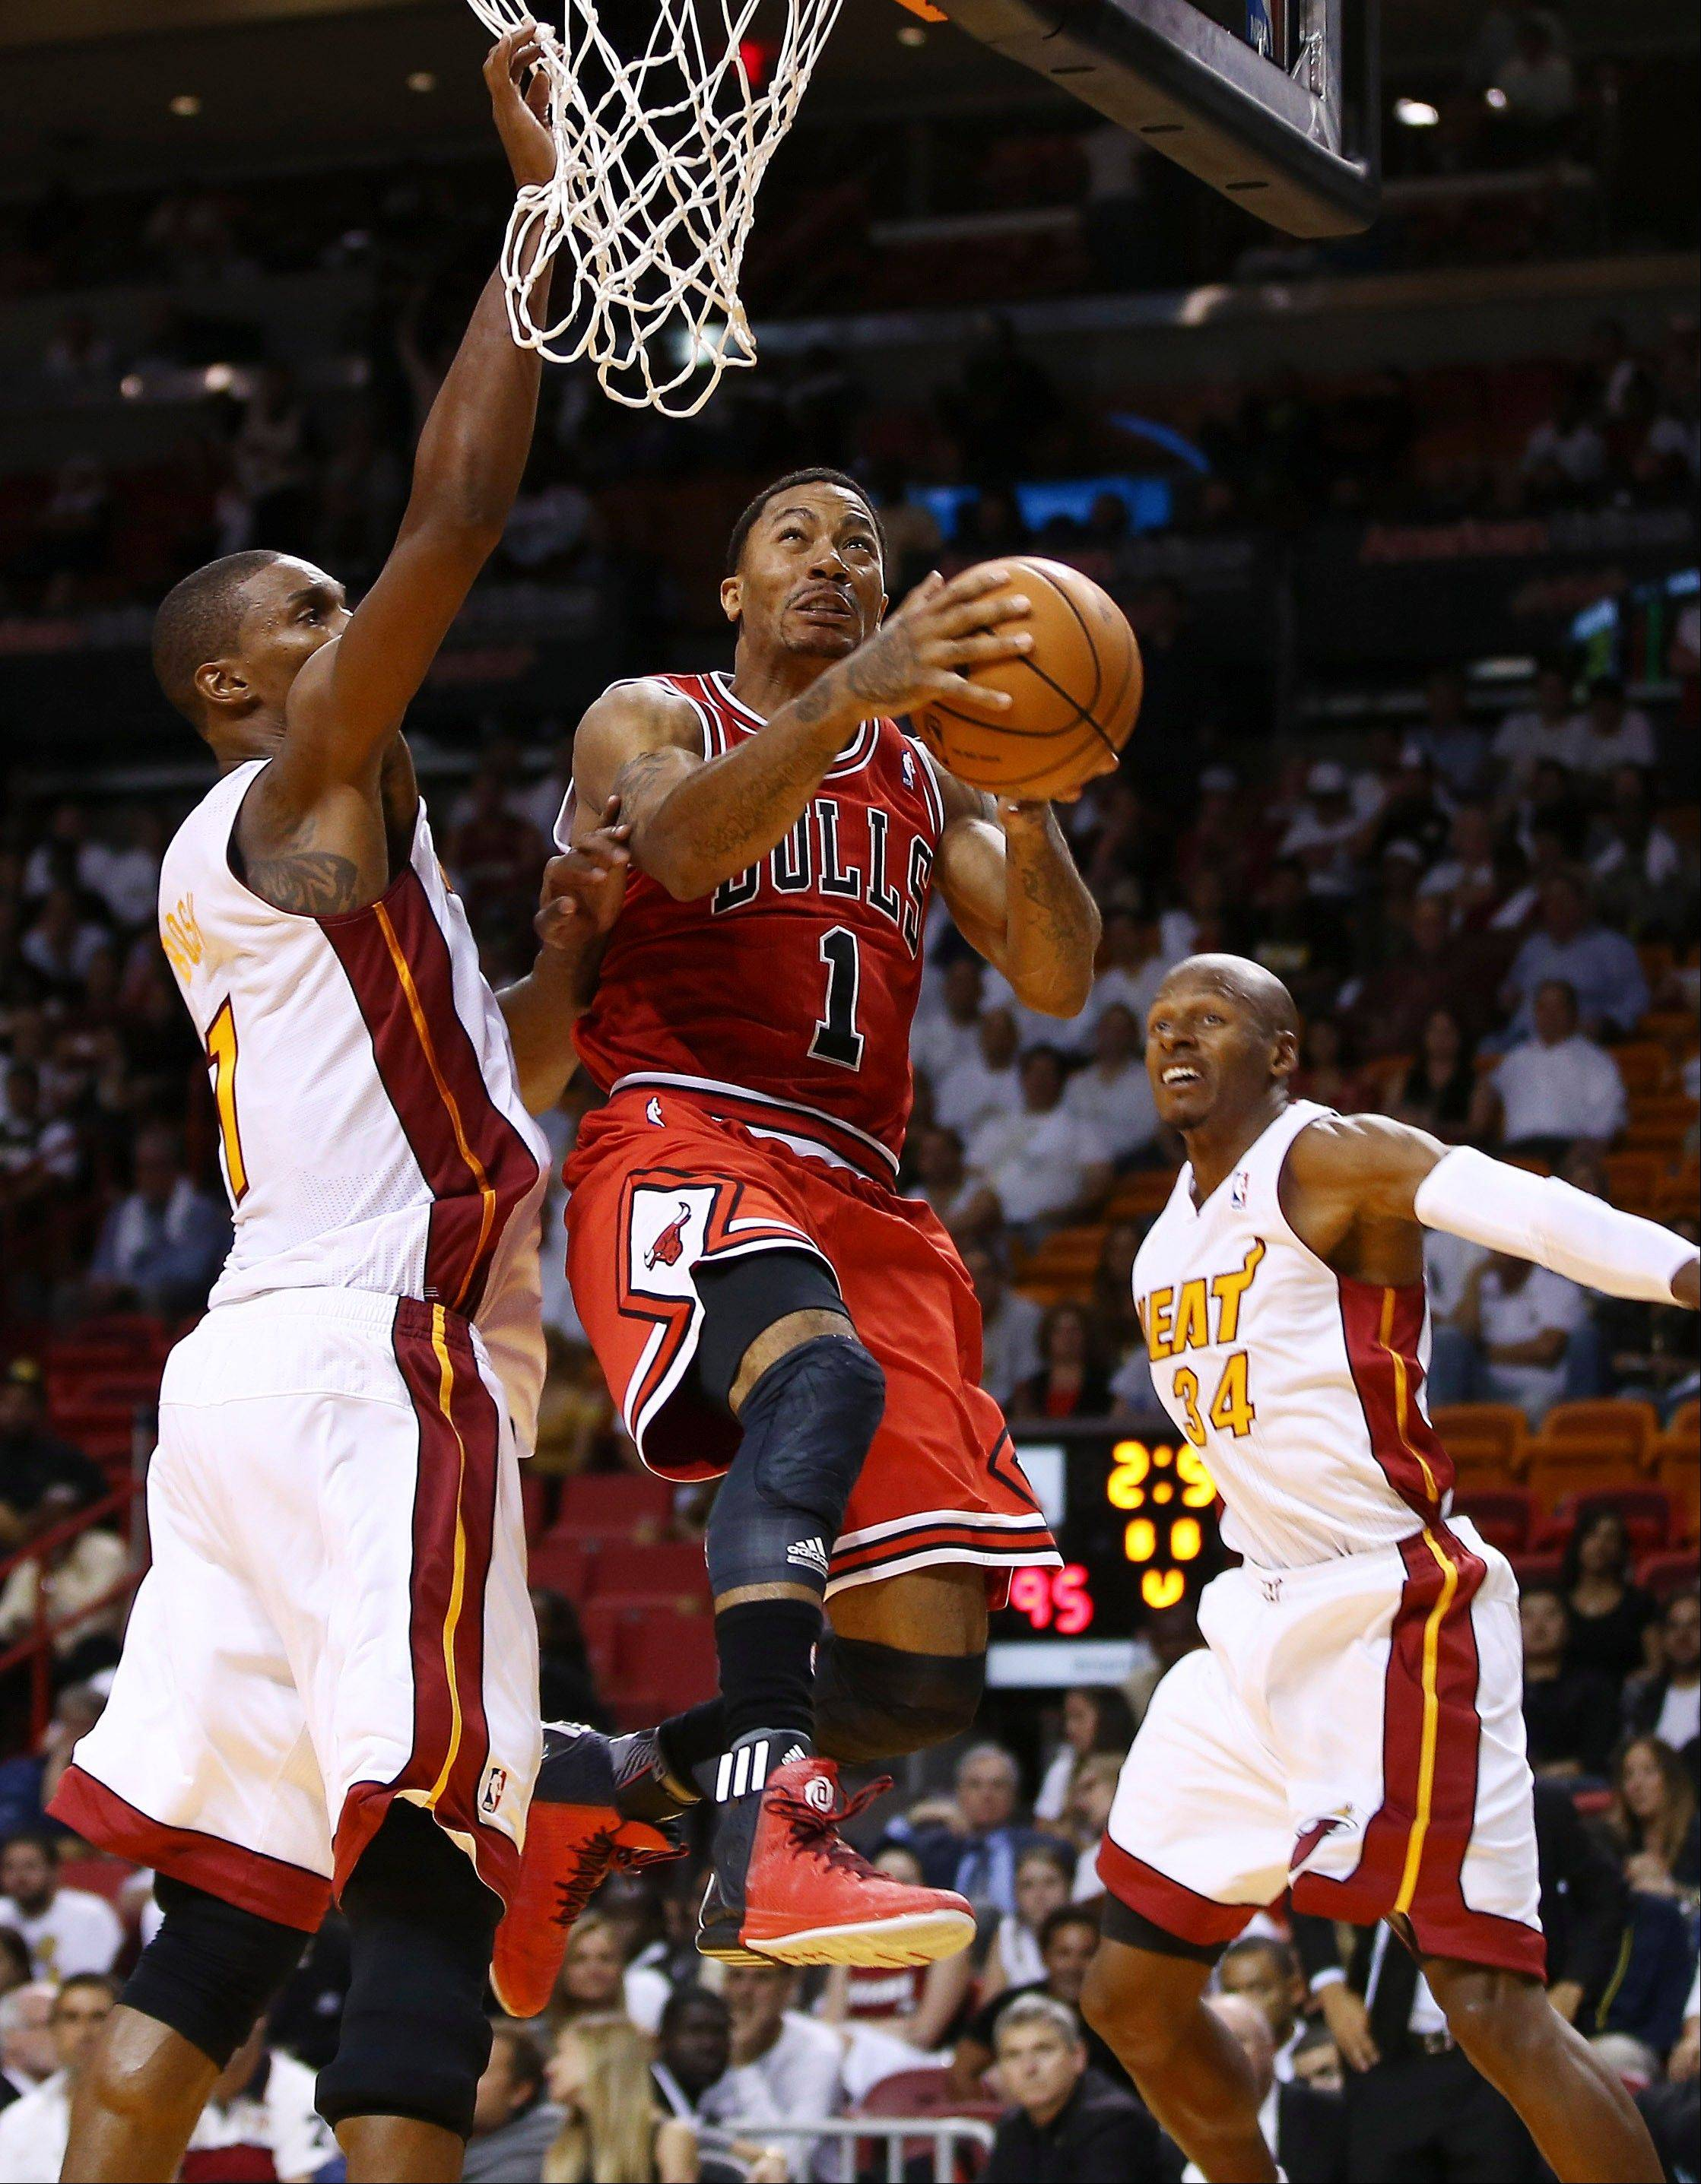 Chicago Bulls' Derrick Rose (1) goes to the basket between Miami Heat's Chris Bosh (1) and Ray Allen (34) during the second half of an NBA basketball game in Miami, Tuesday, Oct. 29, 2013. Rose missed the shot. The Heat won 107-95.